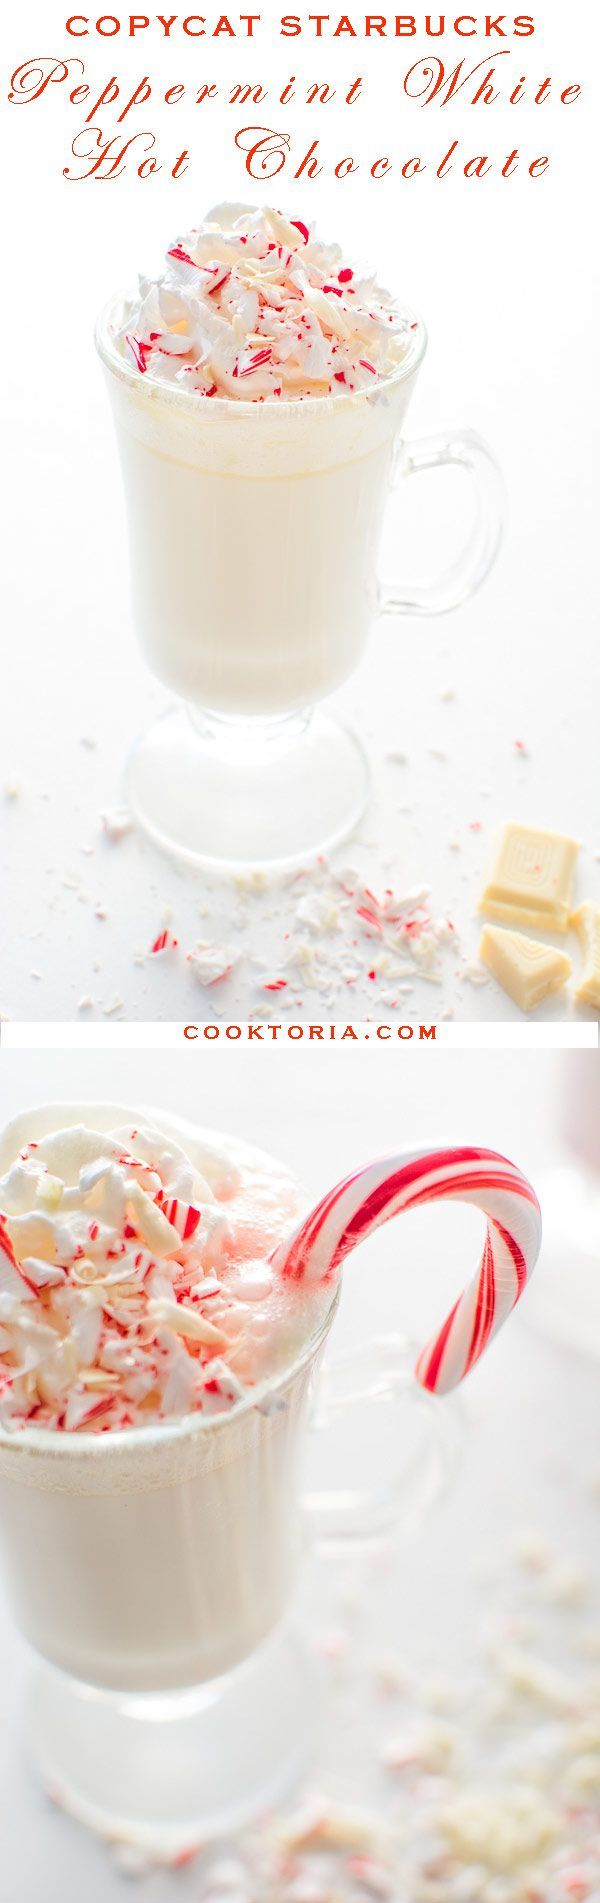 Copycat Starbucks White Peppermint Hot Chocolate. Creamy and sweet, it's just what you are craving this season! ❤ http://COOKTORIA.COM